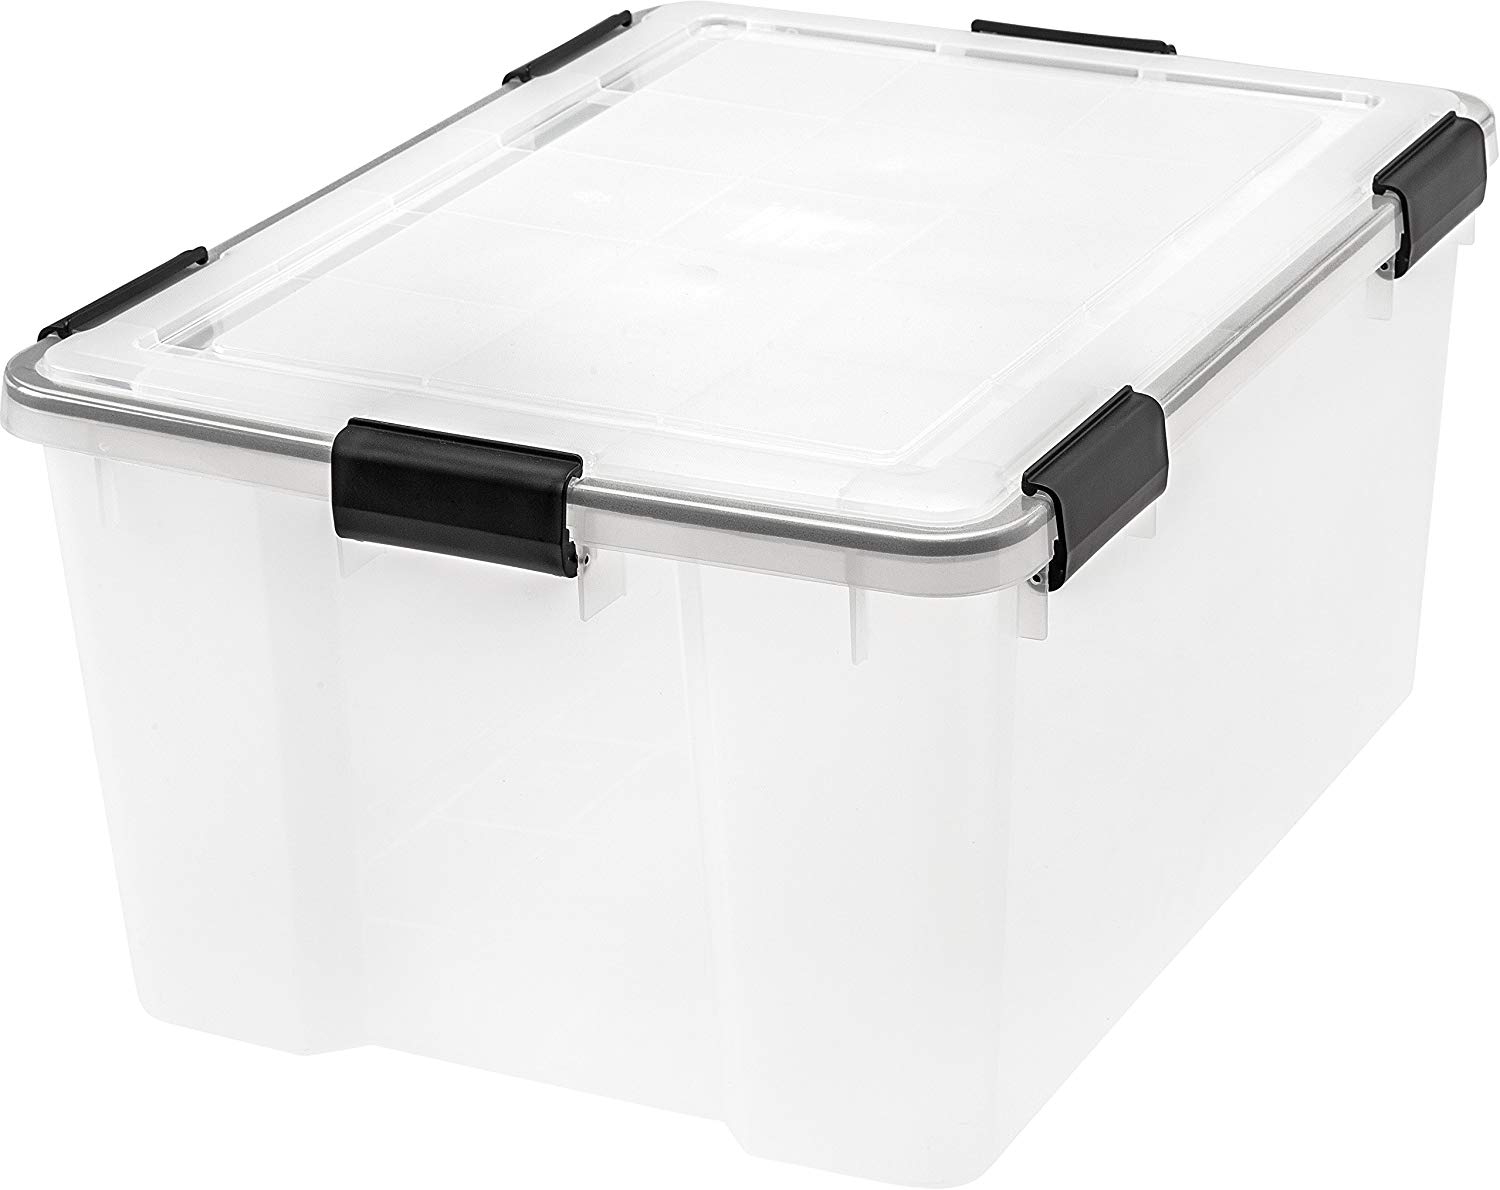 62 qt. Ultimate Airtight Box, 23.5 Inch x 18 Inch